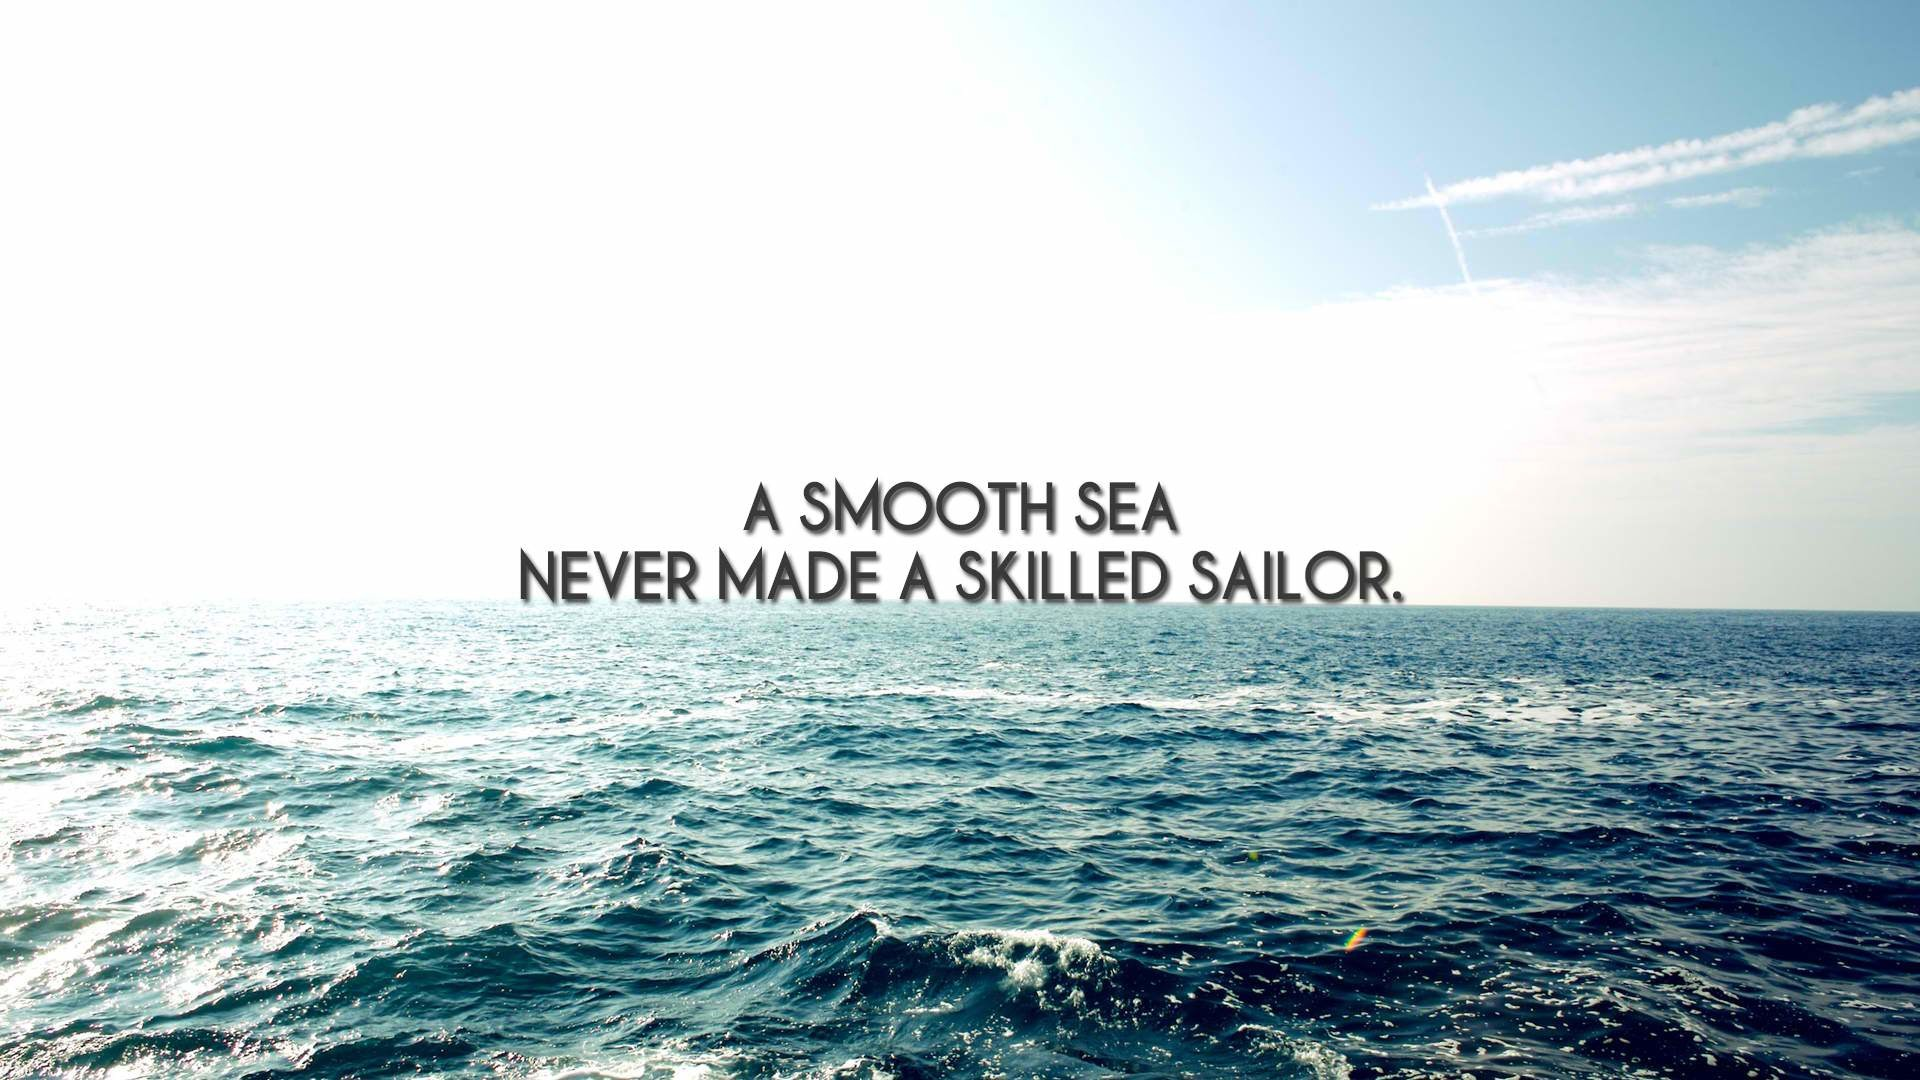 ocean wallpaper hd with inspirational quote